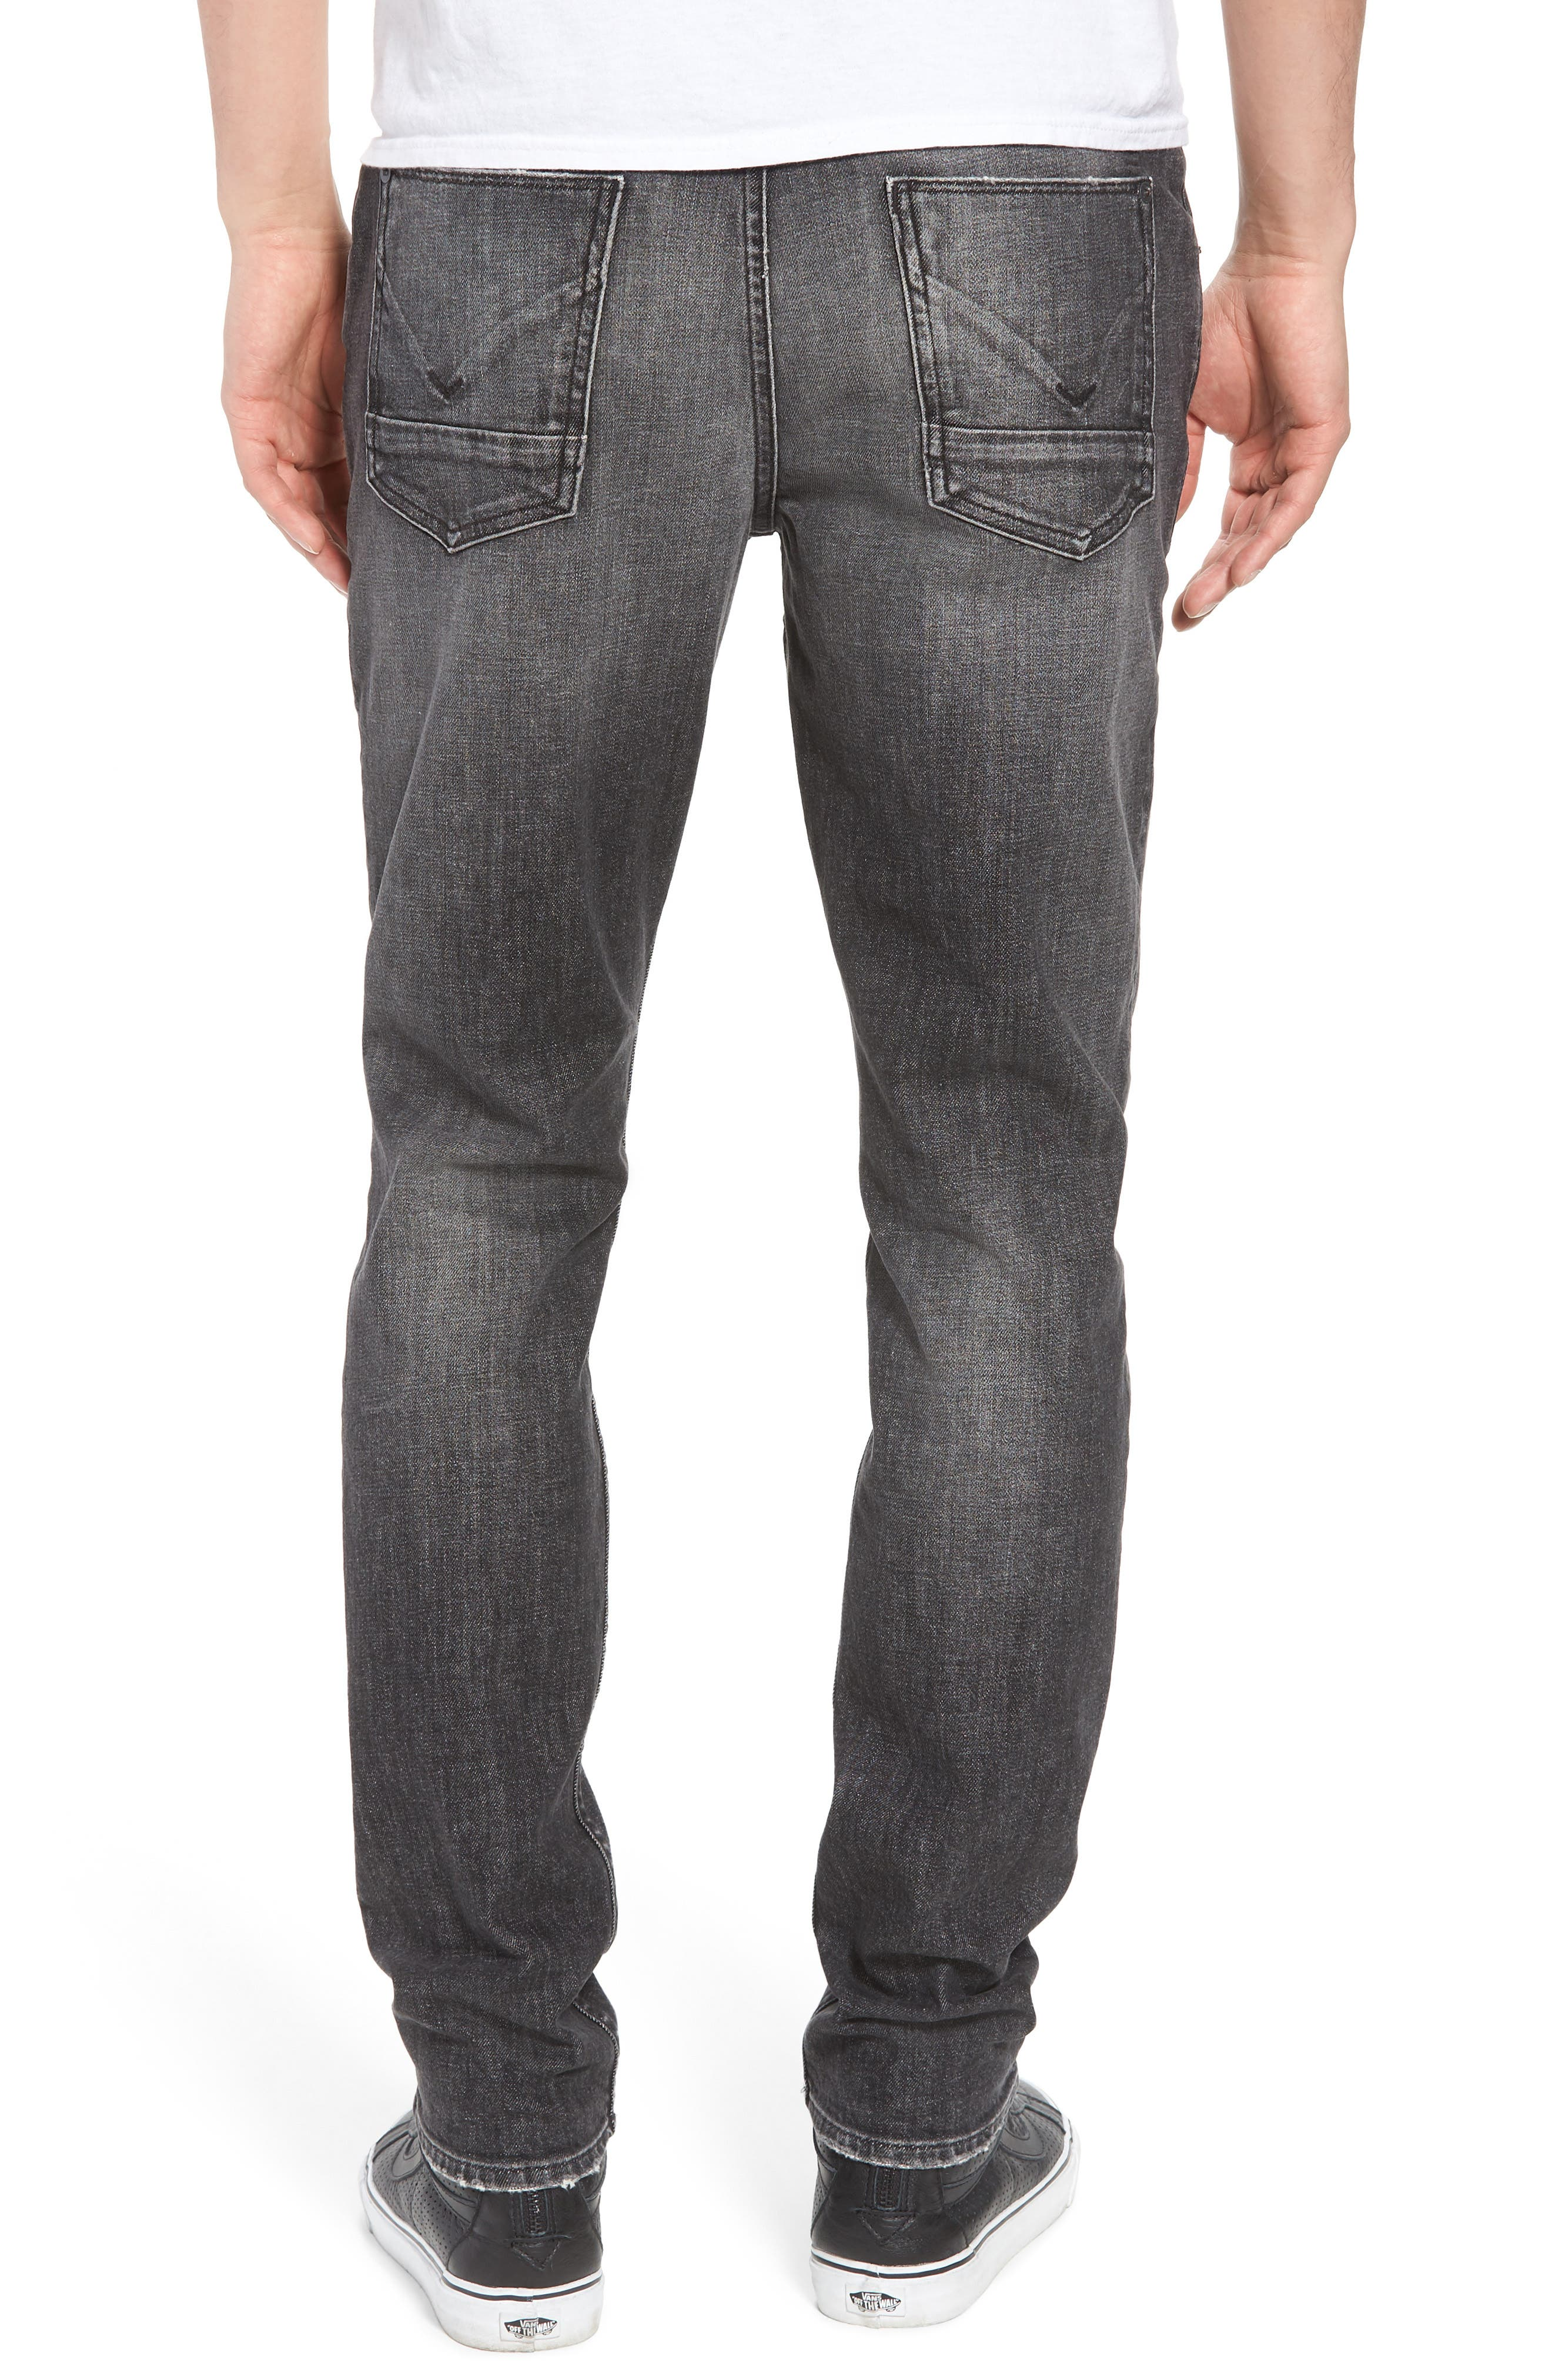 Axl Skinny Fit Jeans,                             Alternate thumbnail 2, color,                             001